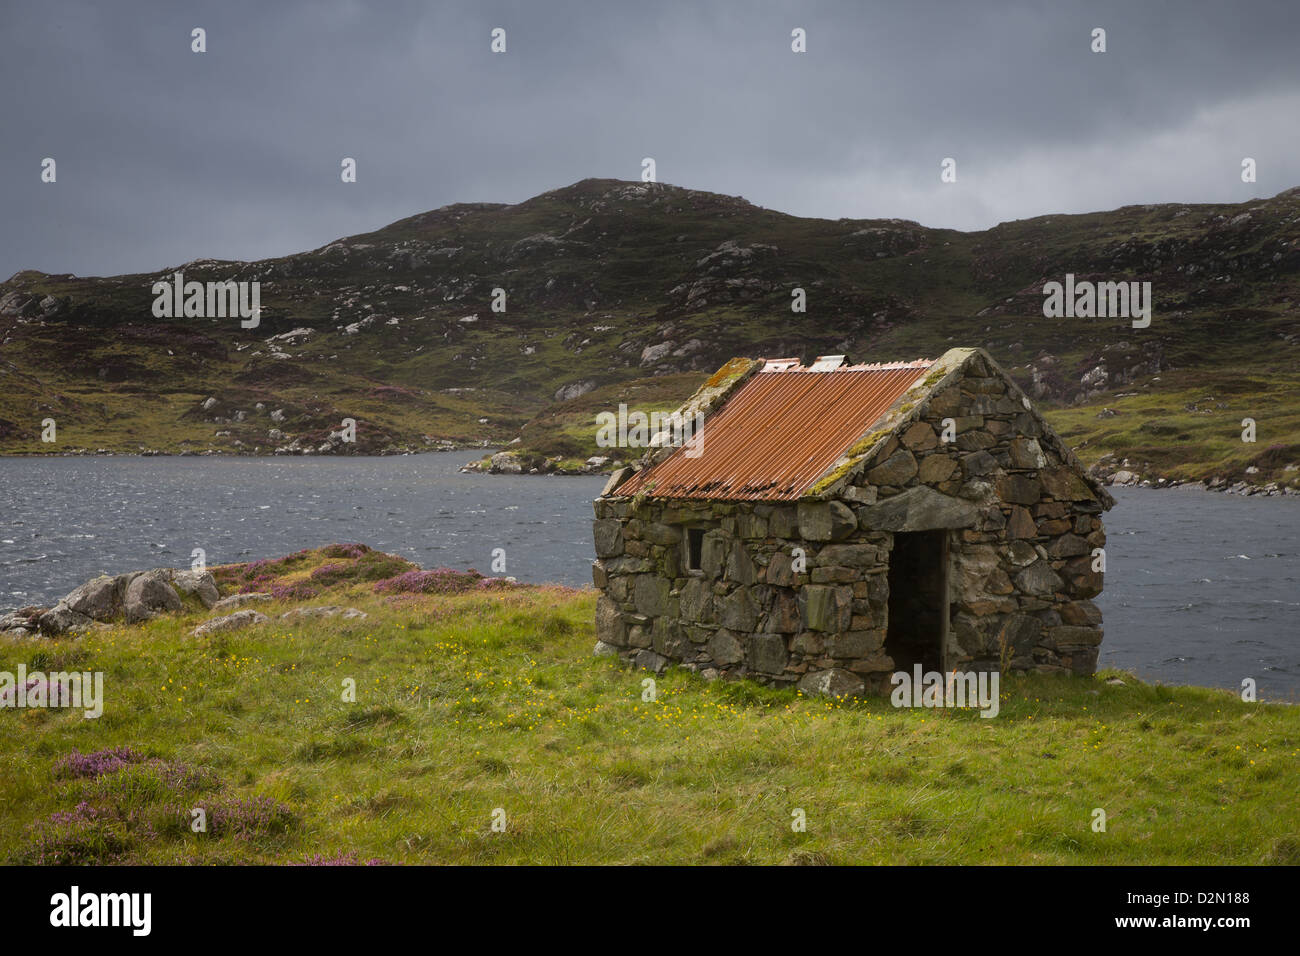 Crofters Hut next to a Loch in the Outer Hebrides - Stock Image